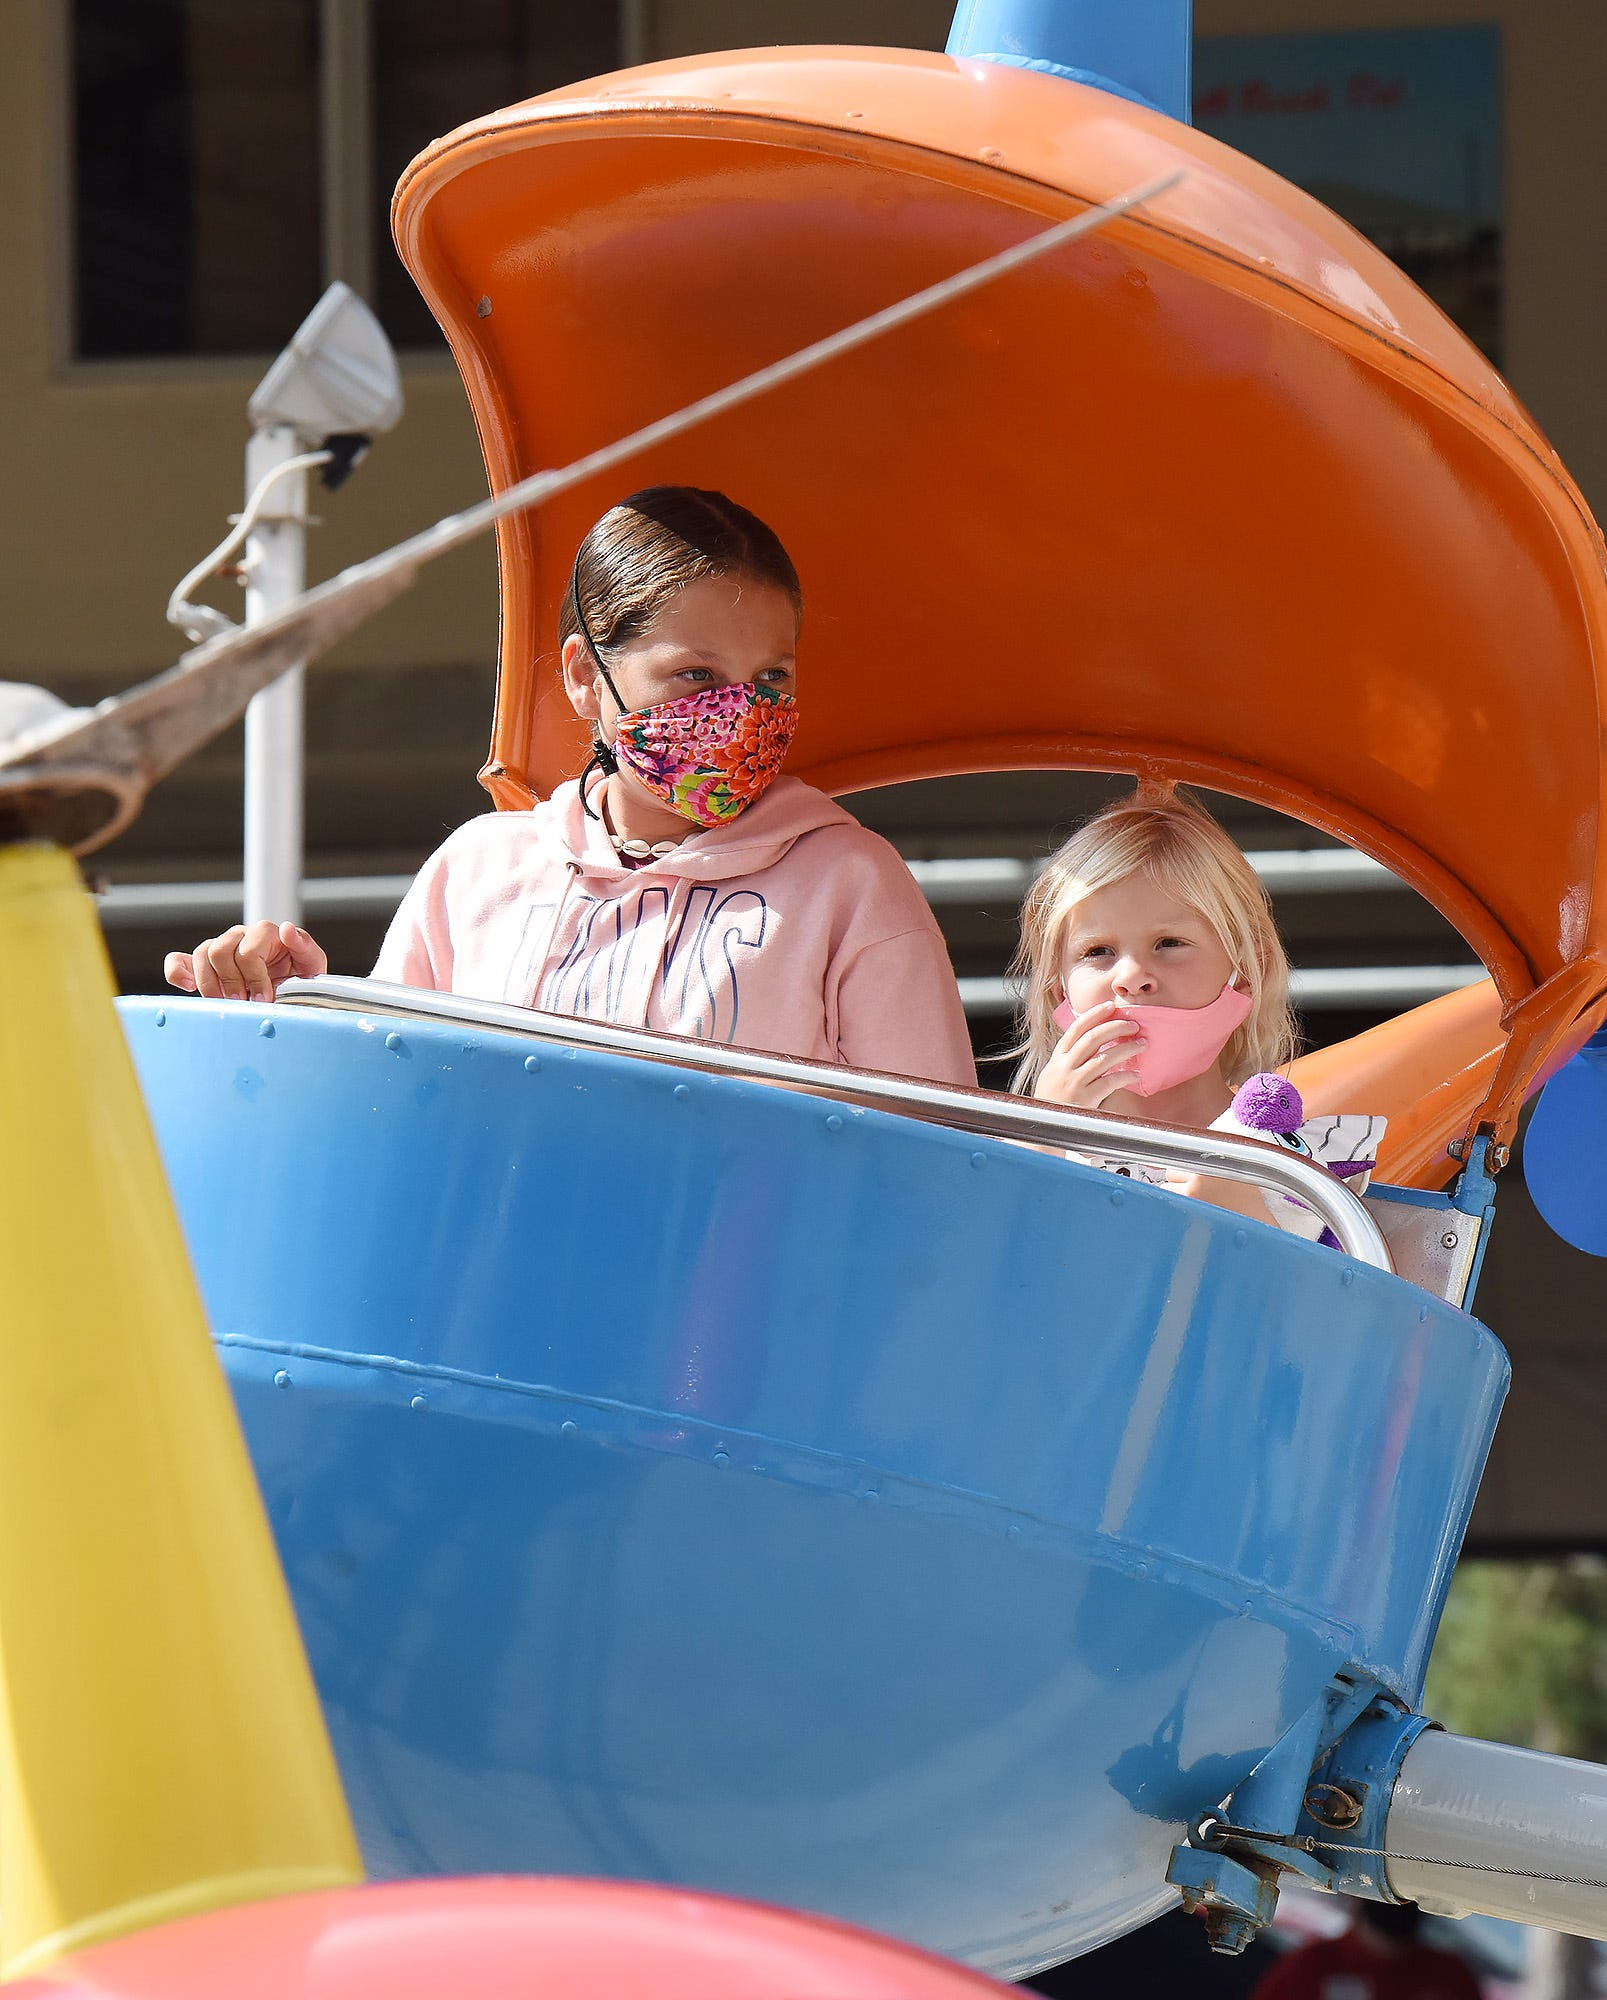 A mother and daughter riding a flat ride at Funland.